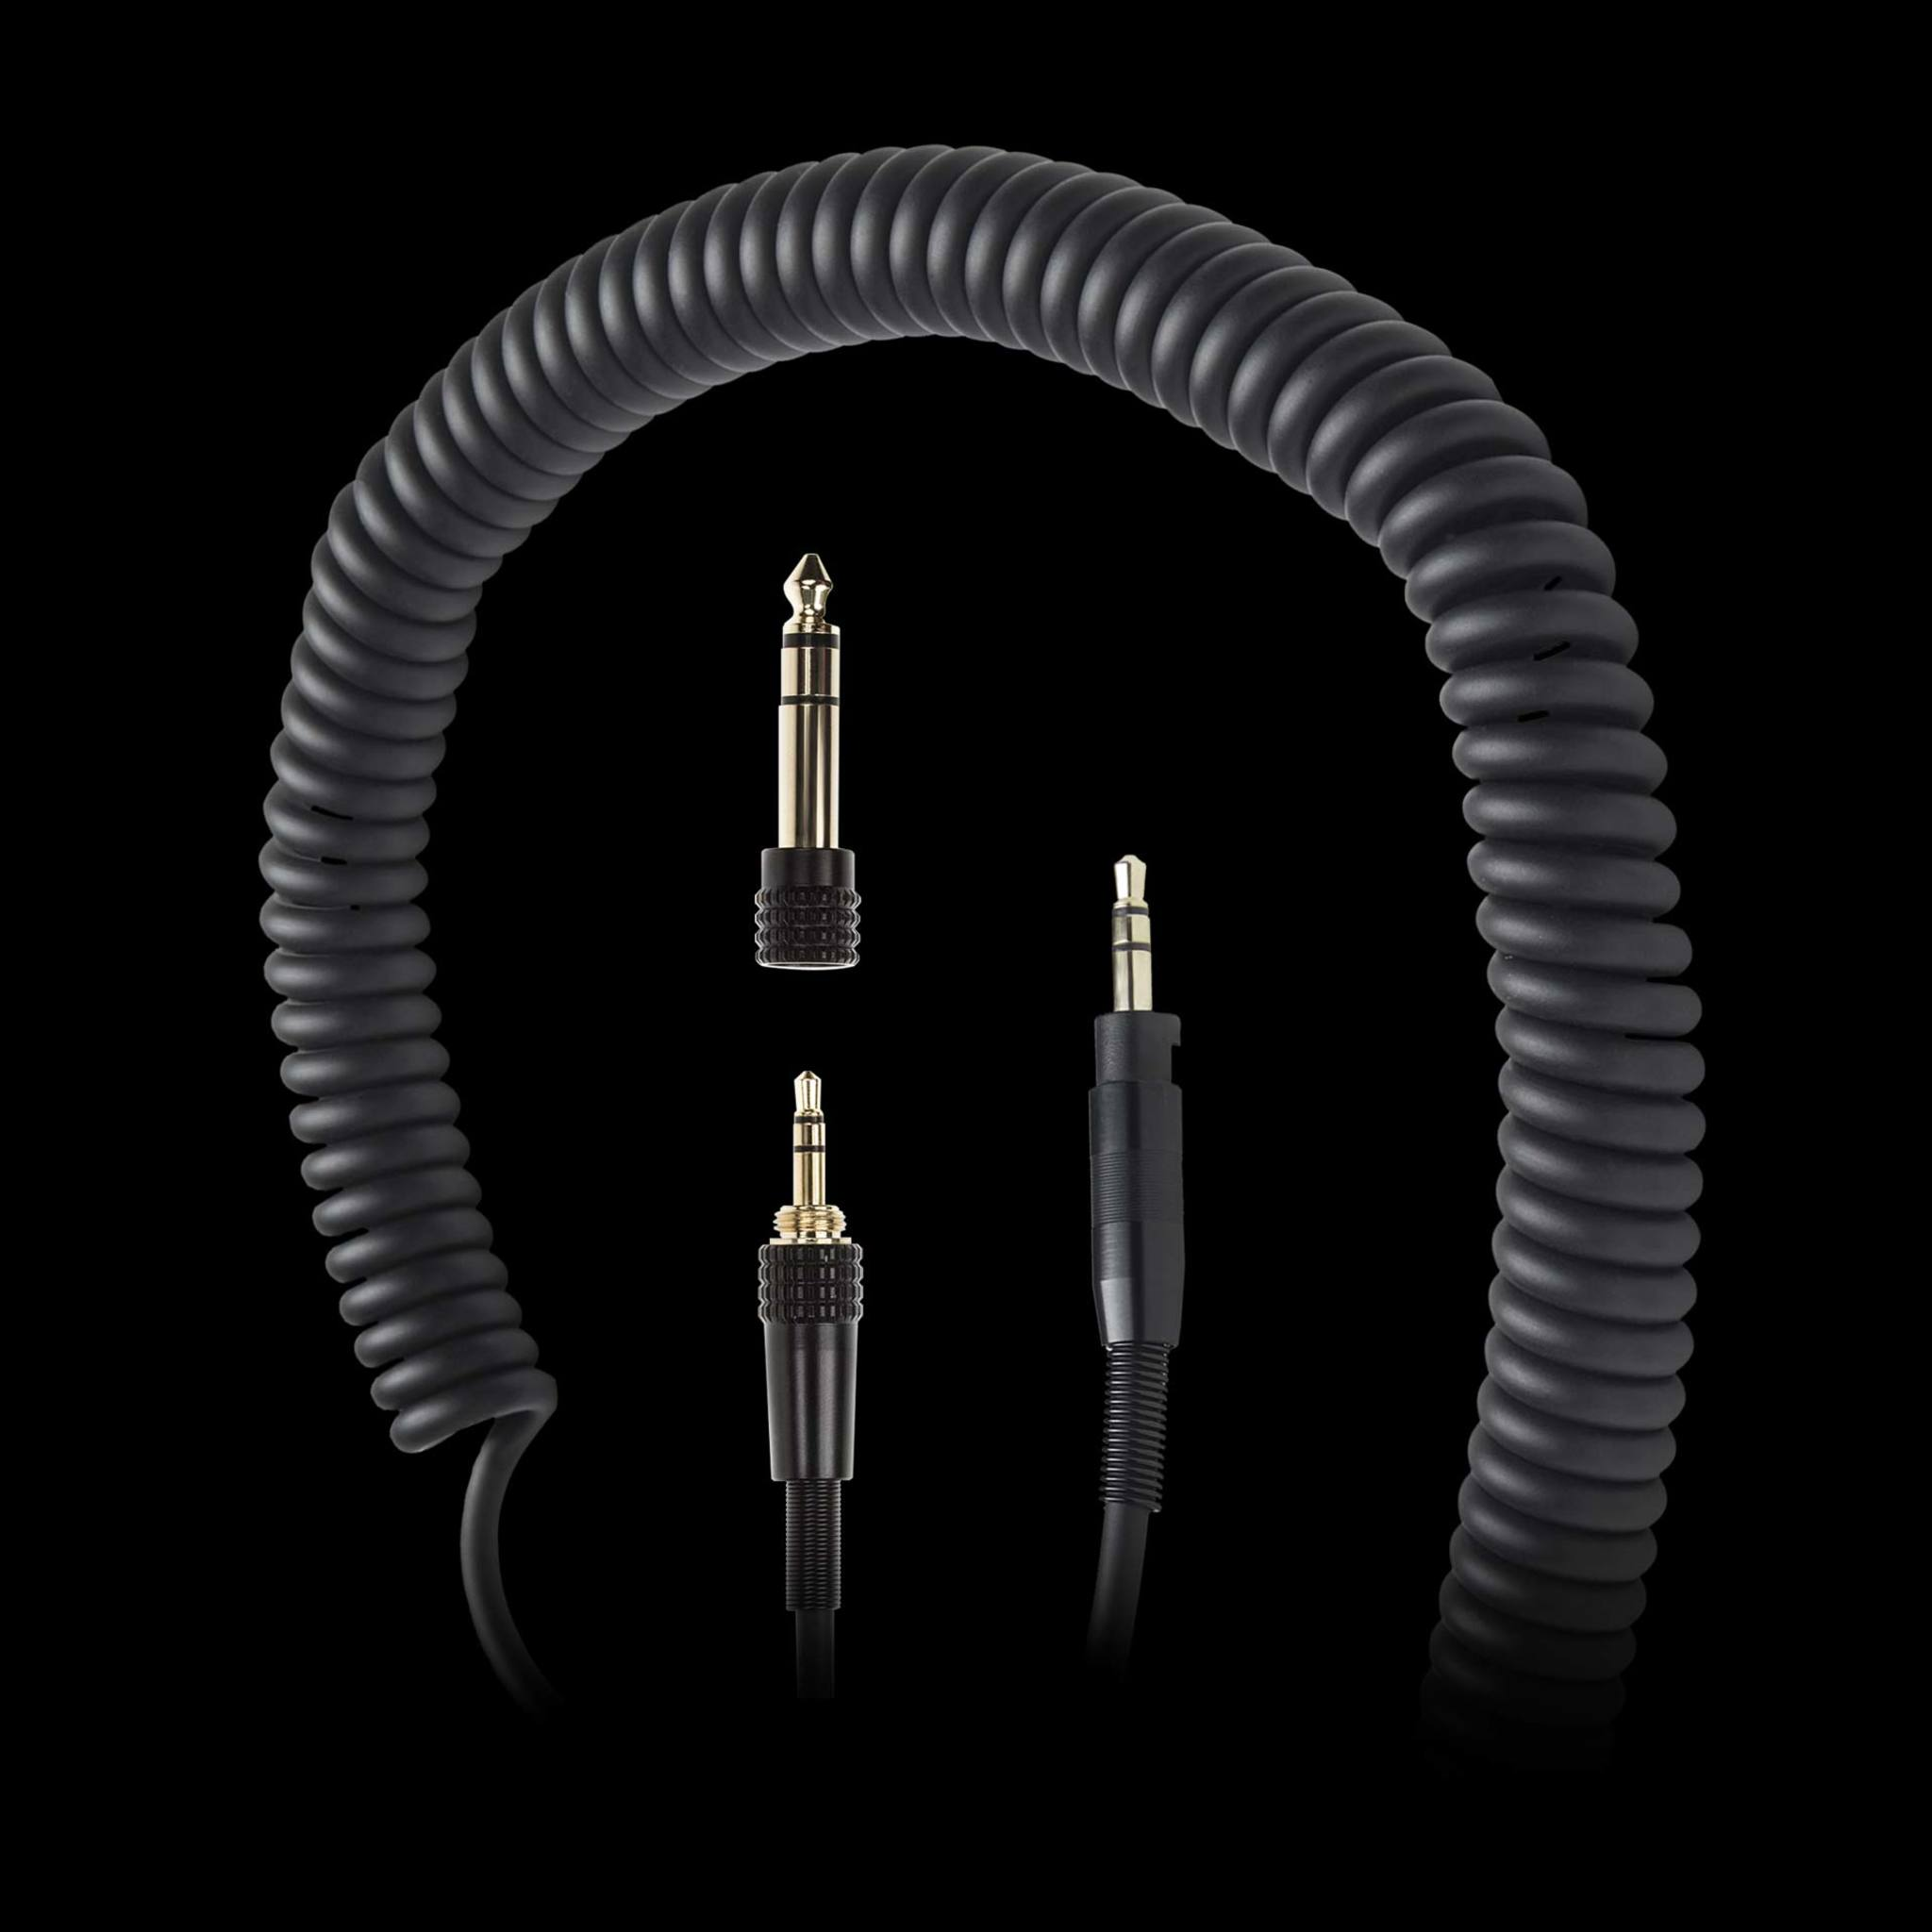 CoilPro Cable image